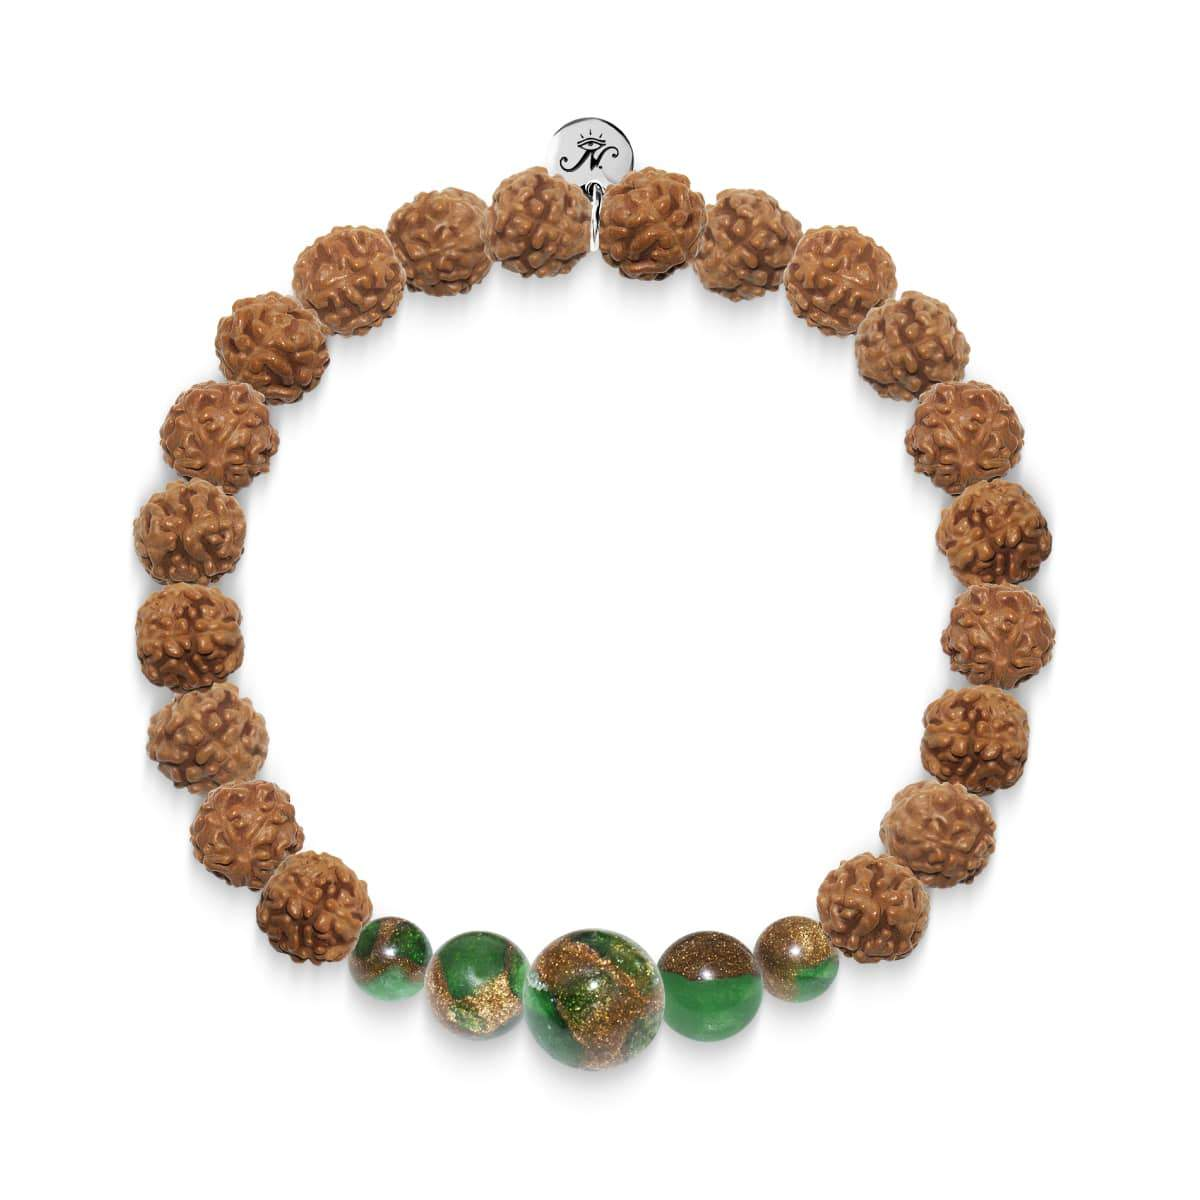 Meeting of Minds | Silver Mala Yoga Bracelet | New Green Agate